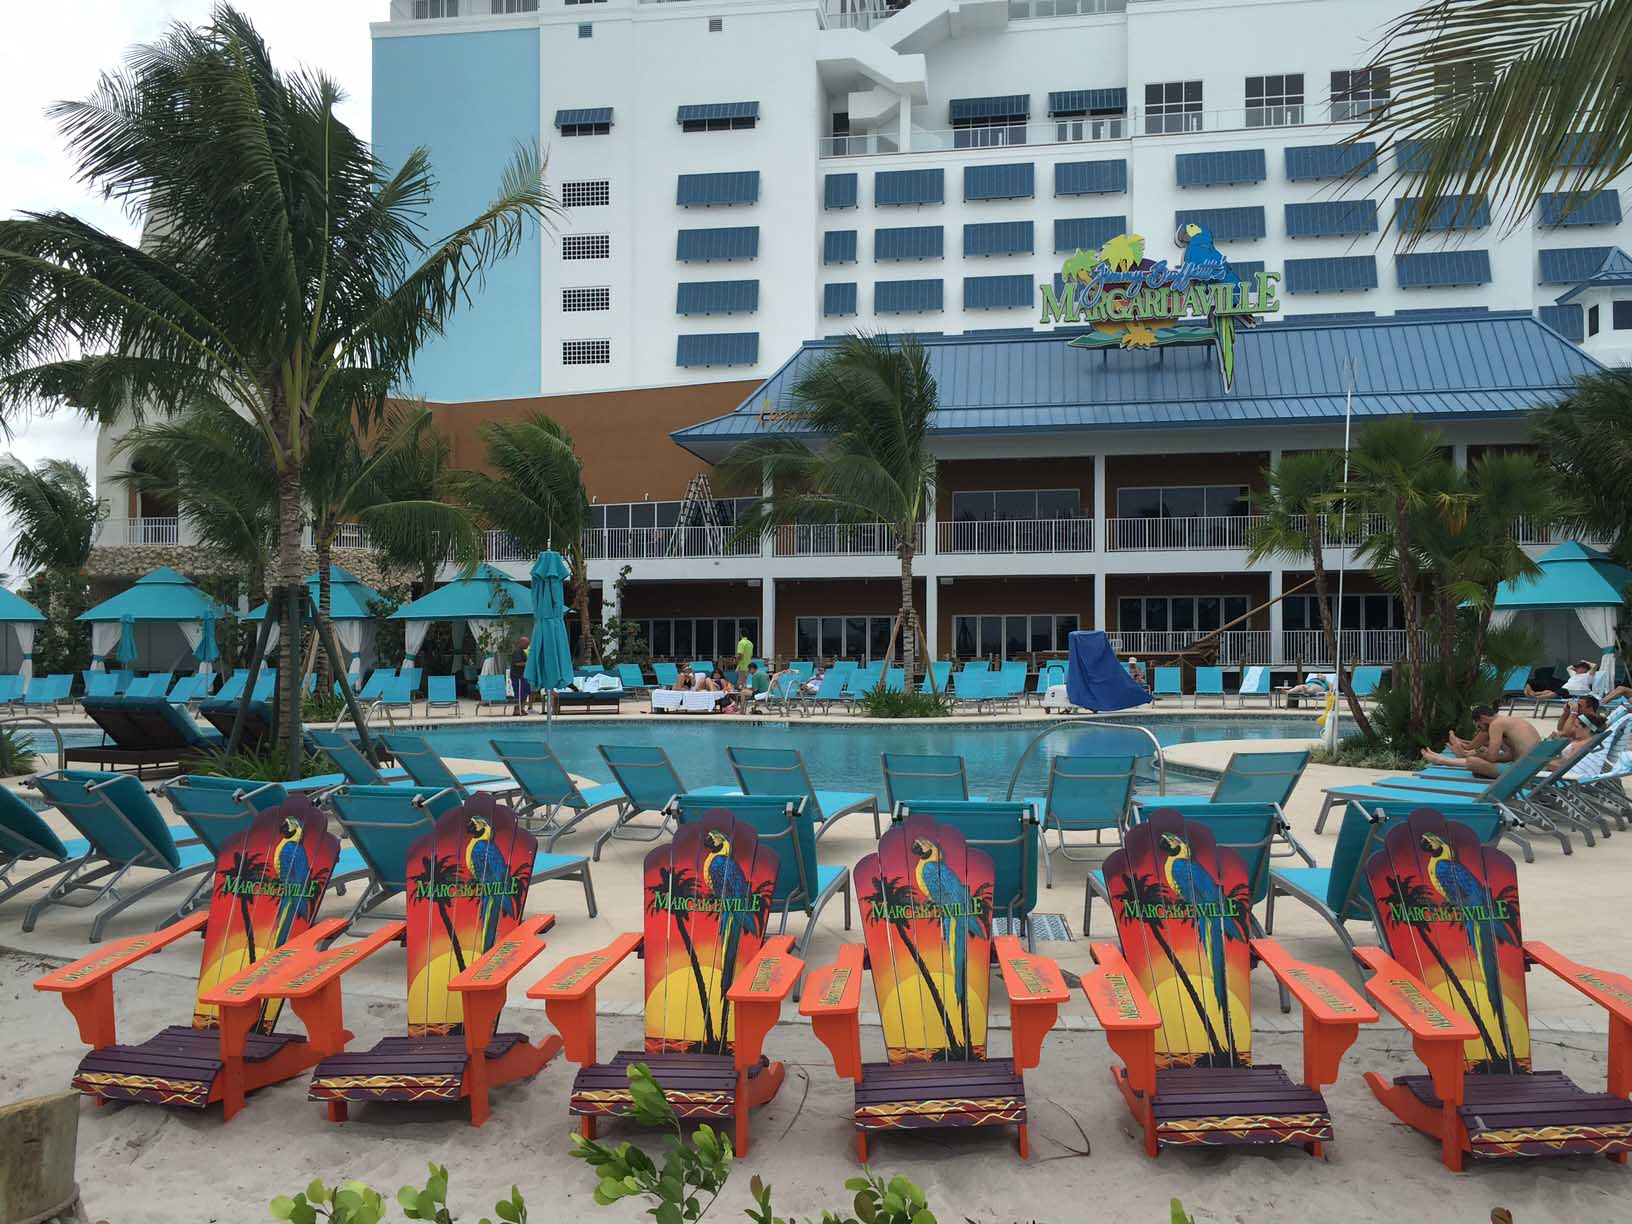 Margaritaville Hollywood Beach Resort Chairs